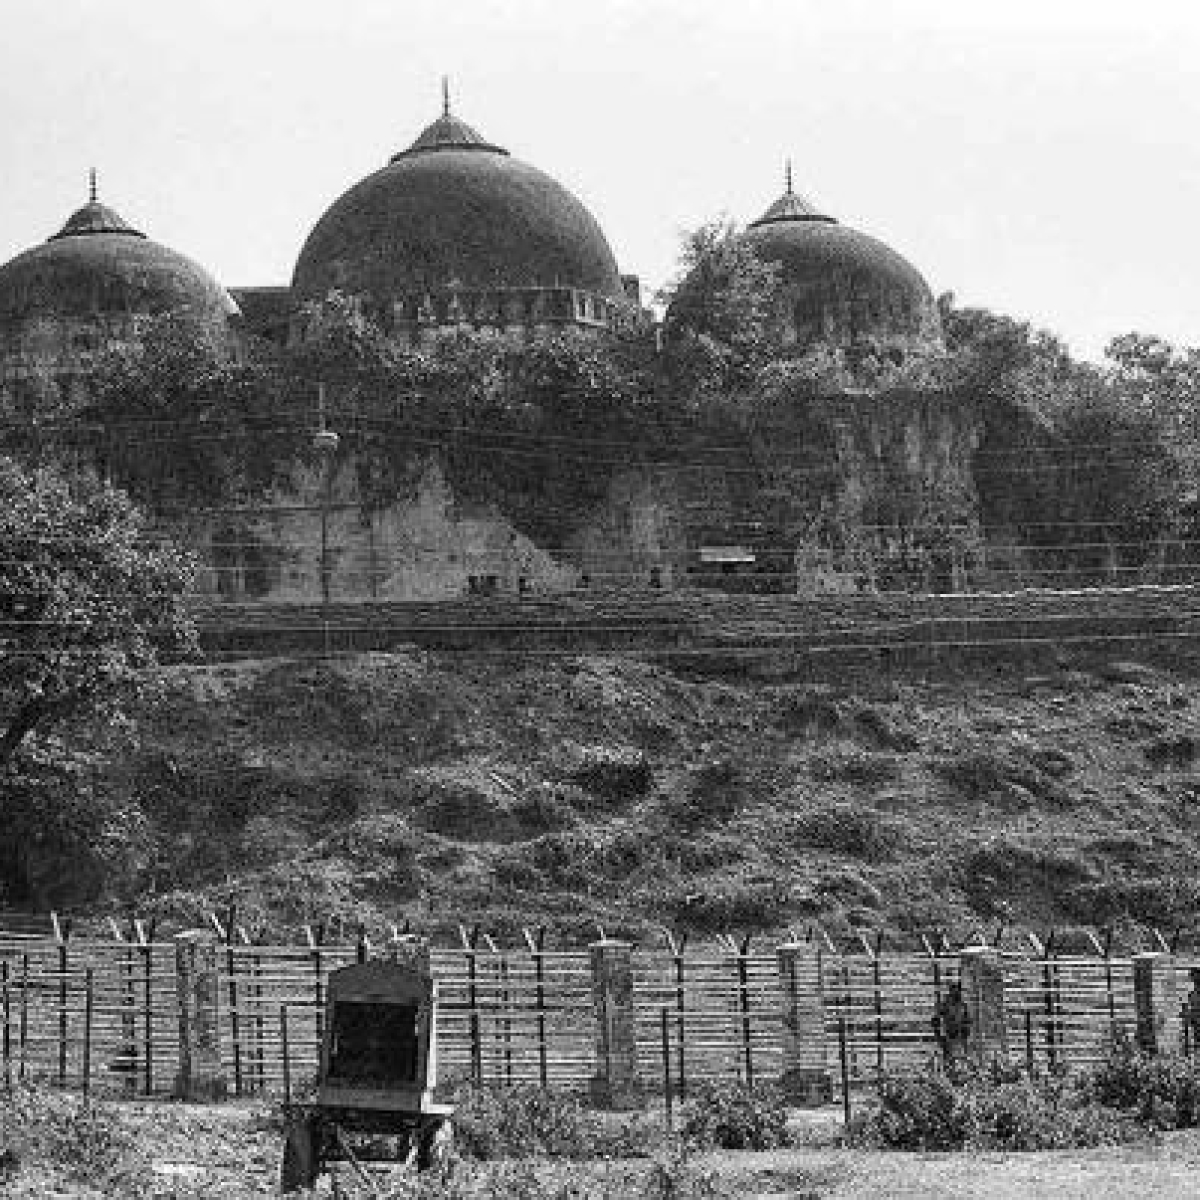 Mosque in Ayodhya will be of same size as Babri Masjid; Pushpesh Pant to curate its museum: Trust